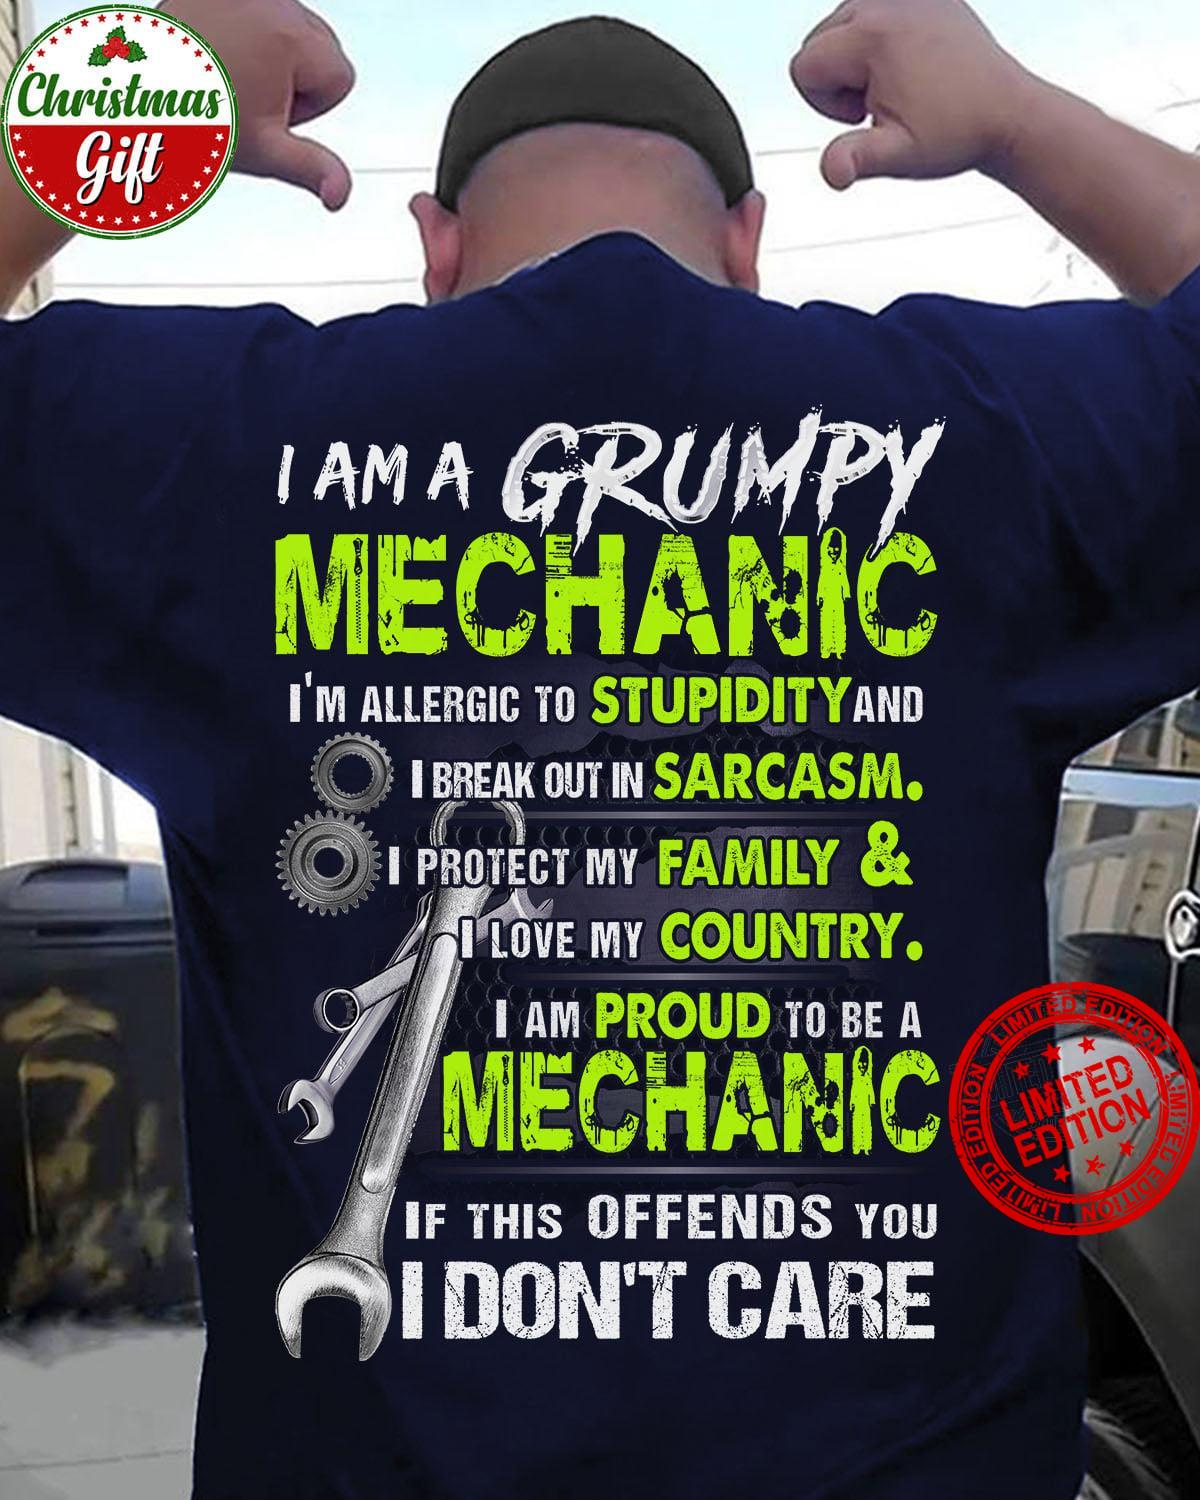 I Am A Grumpy Mechanic I Am Proud To Be A Mechanic If This Offends You I Don't Care Shirt.